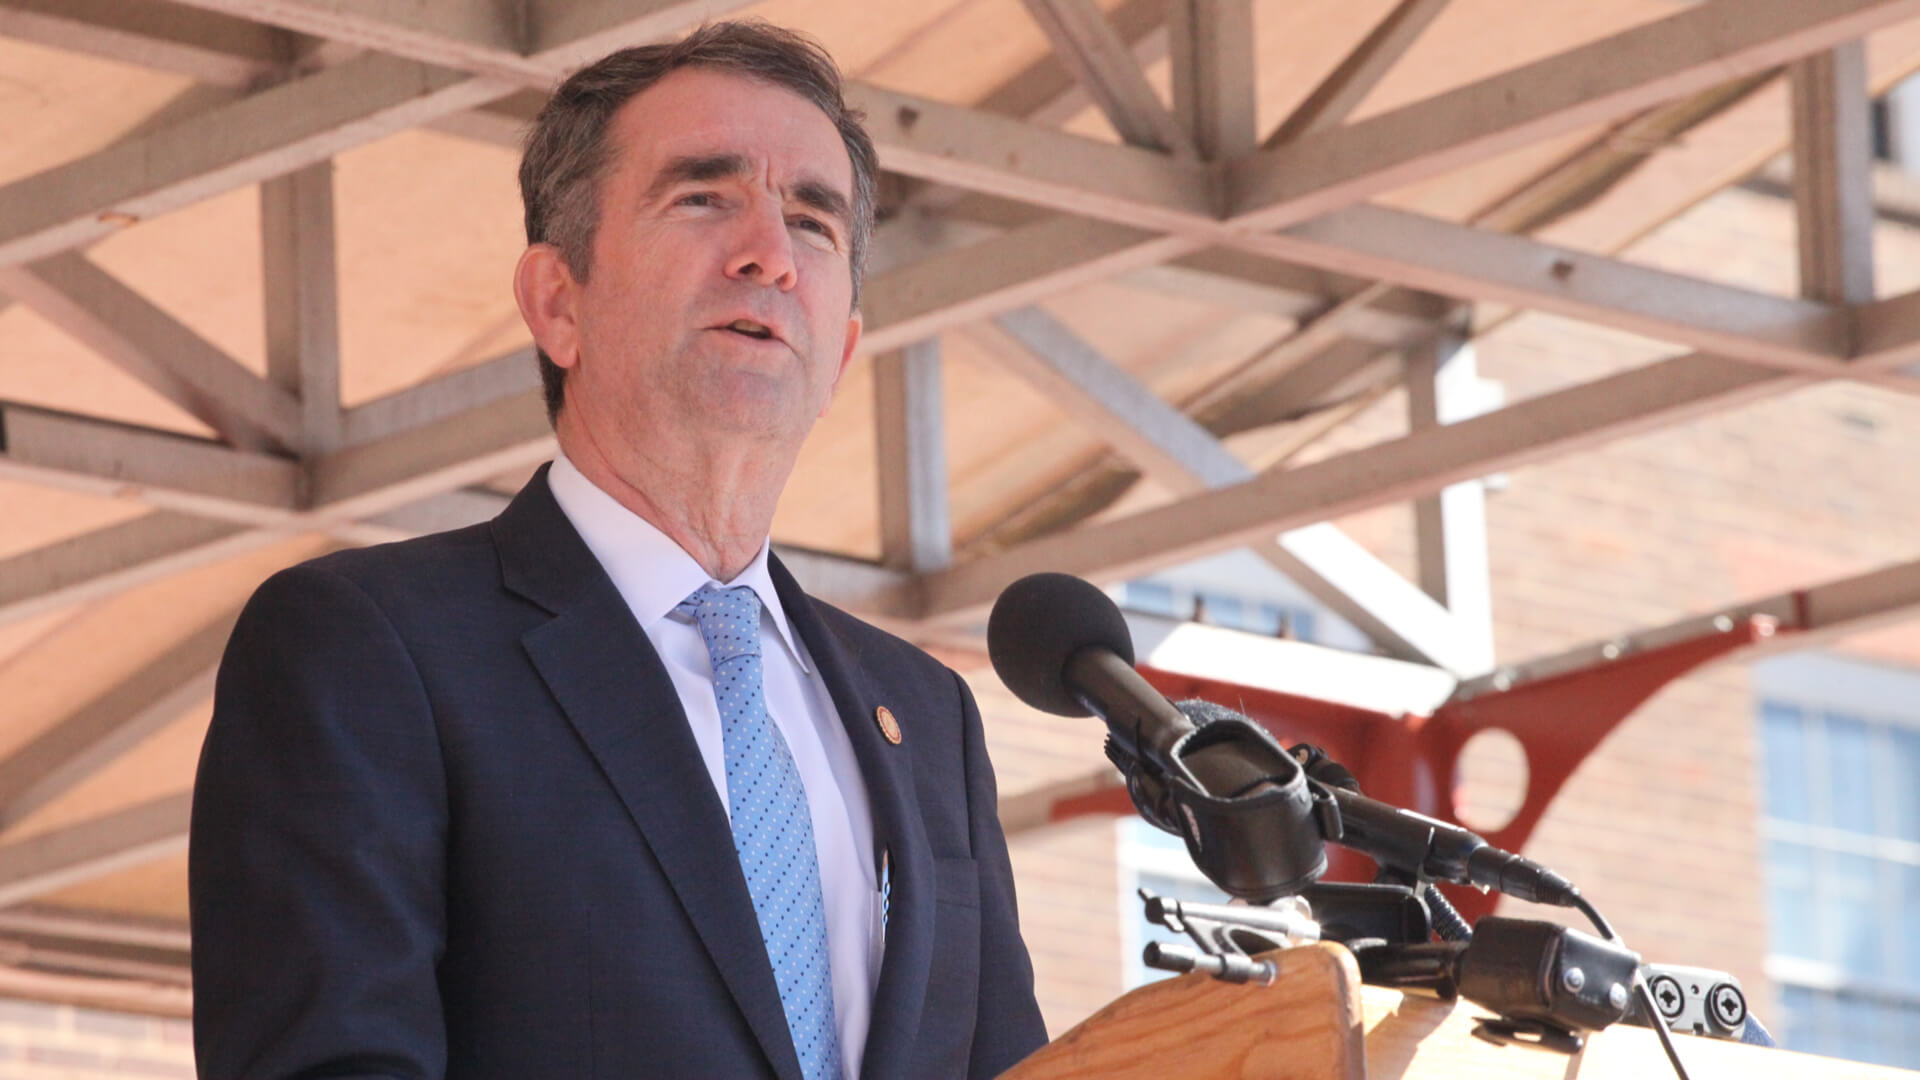 Virginia Governor, Ralph Northam speaking in front of Alexandria City Hall